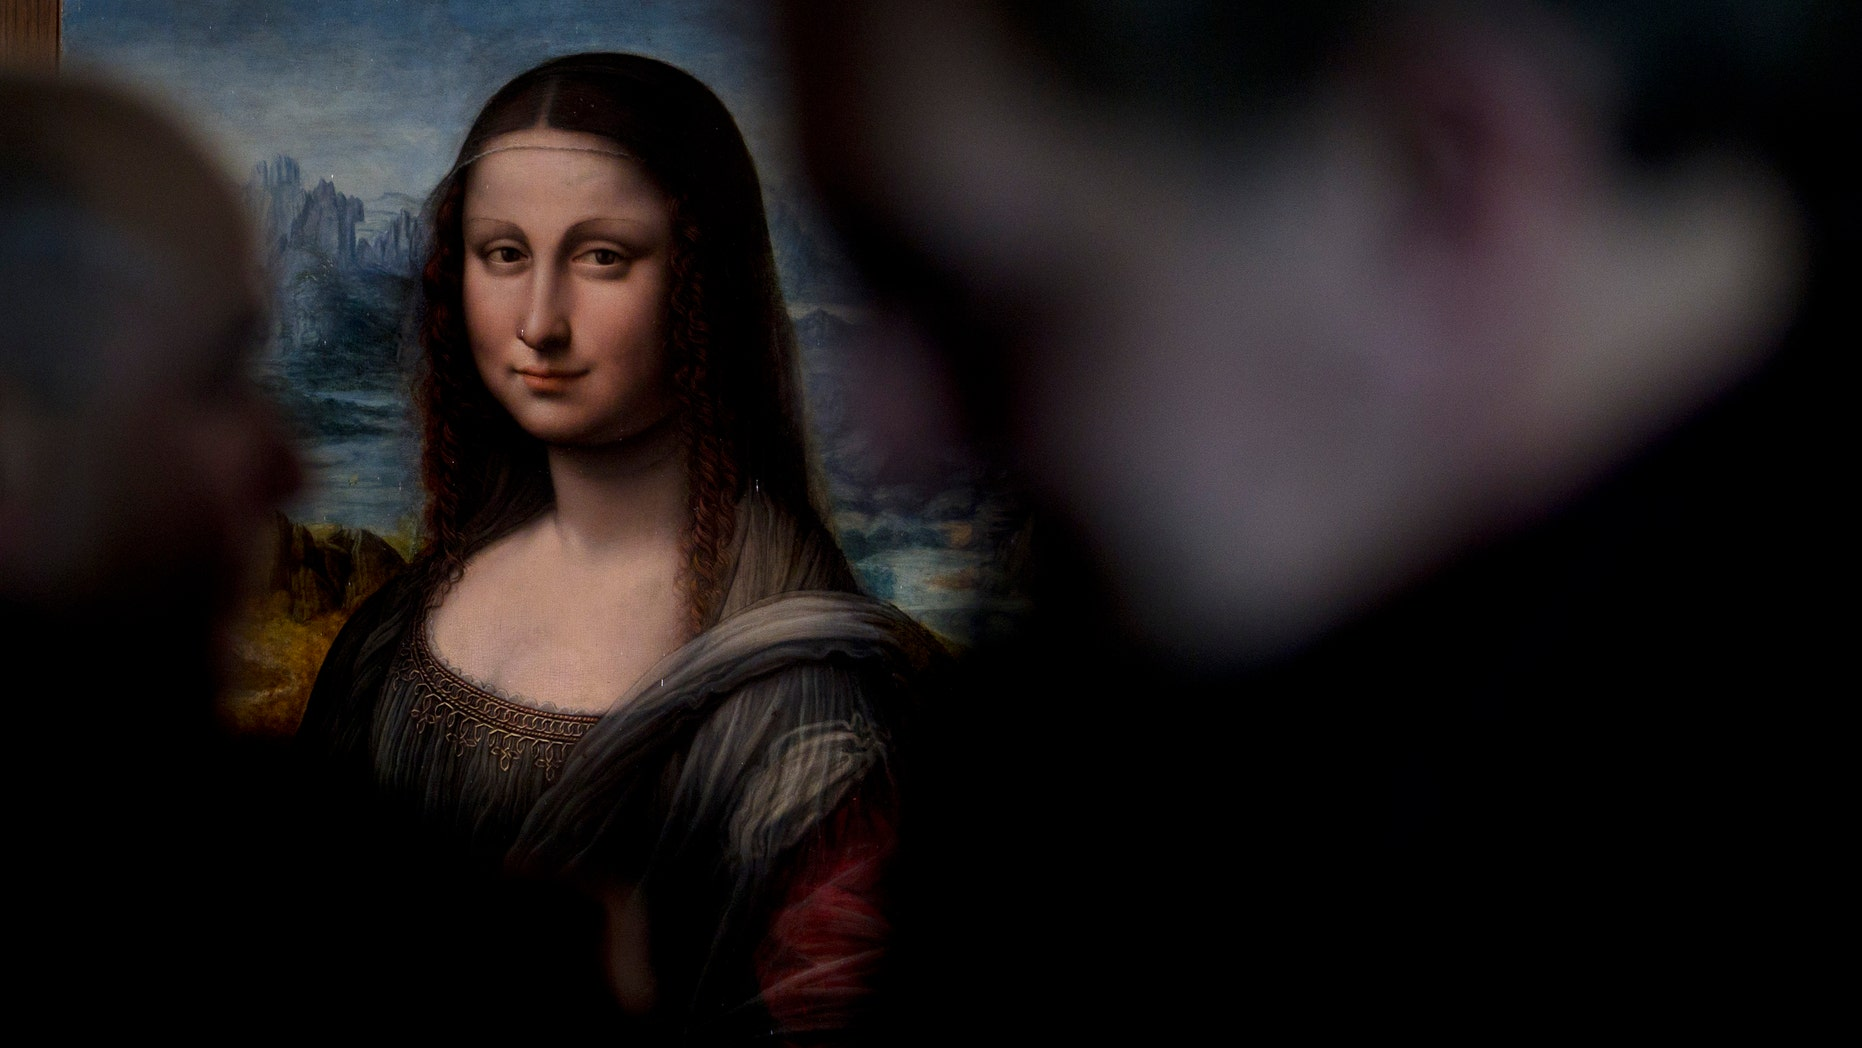 File photo: A copy of Leonardo da Vinci's Mona Lisa that was painted at the same time as the original in the same studio is displayed at the Prado Museum in Madrid Wednesday Feb. 1, 2012. (AP Photo/Paul White)